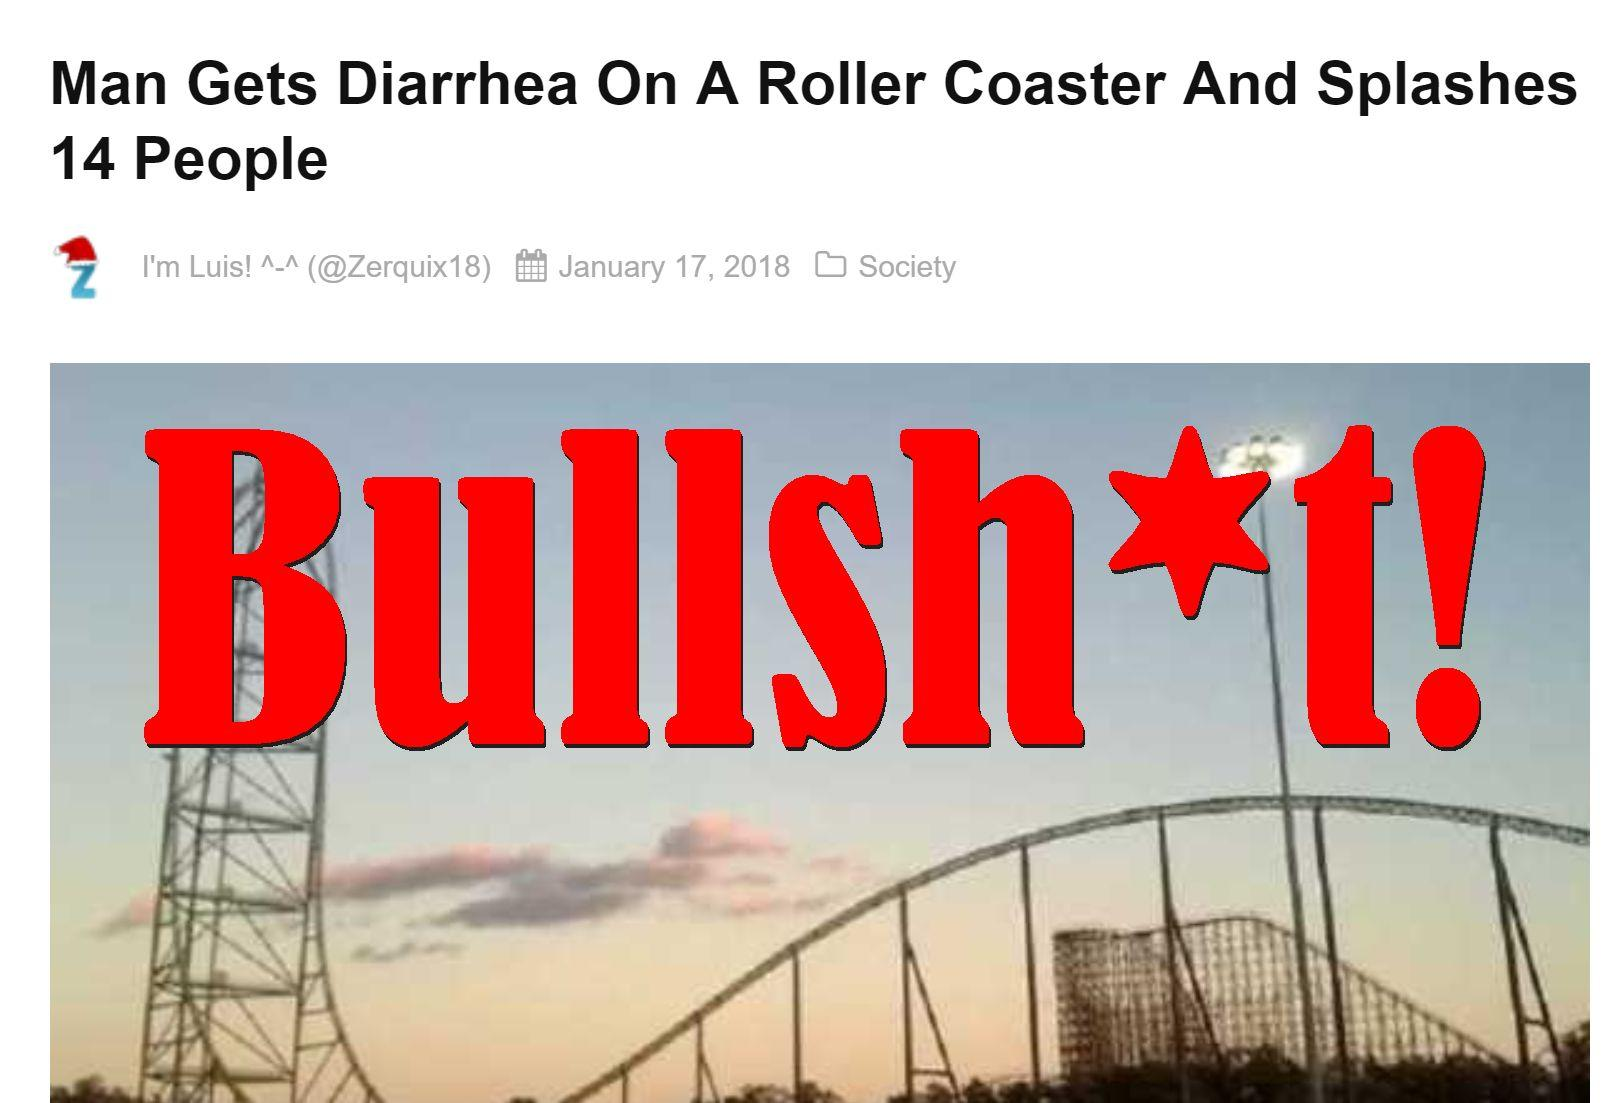 Fake News: Man Did NOT Get Diarrhea On A Roller Coaster And Did NOT Splash 14 People